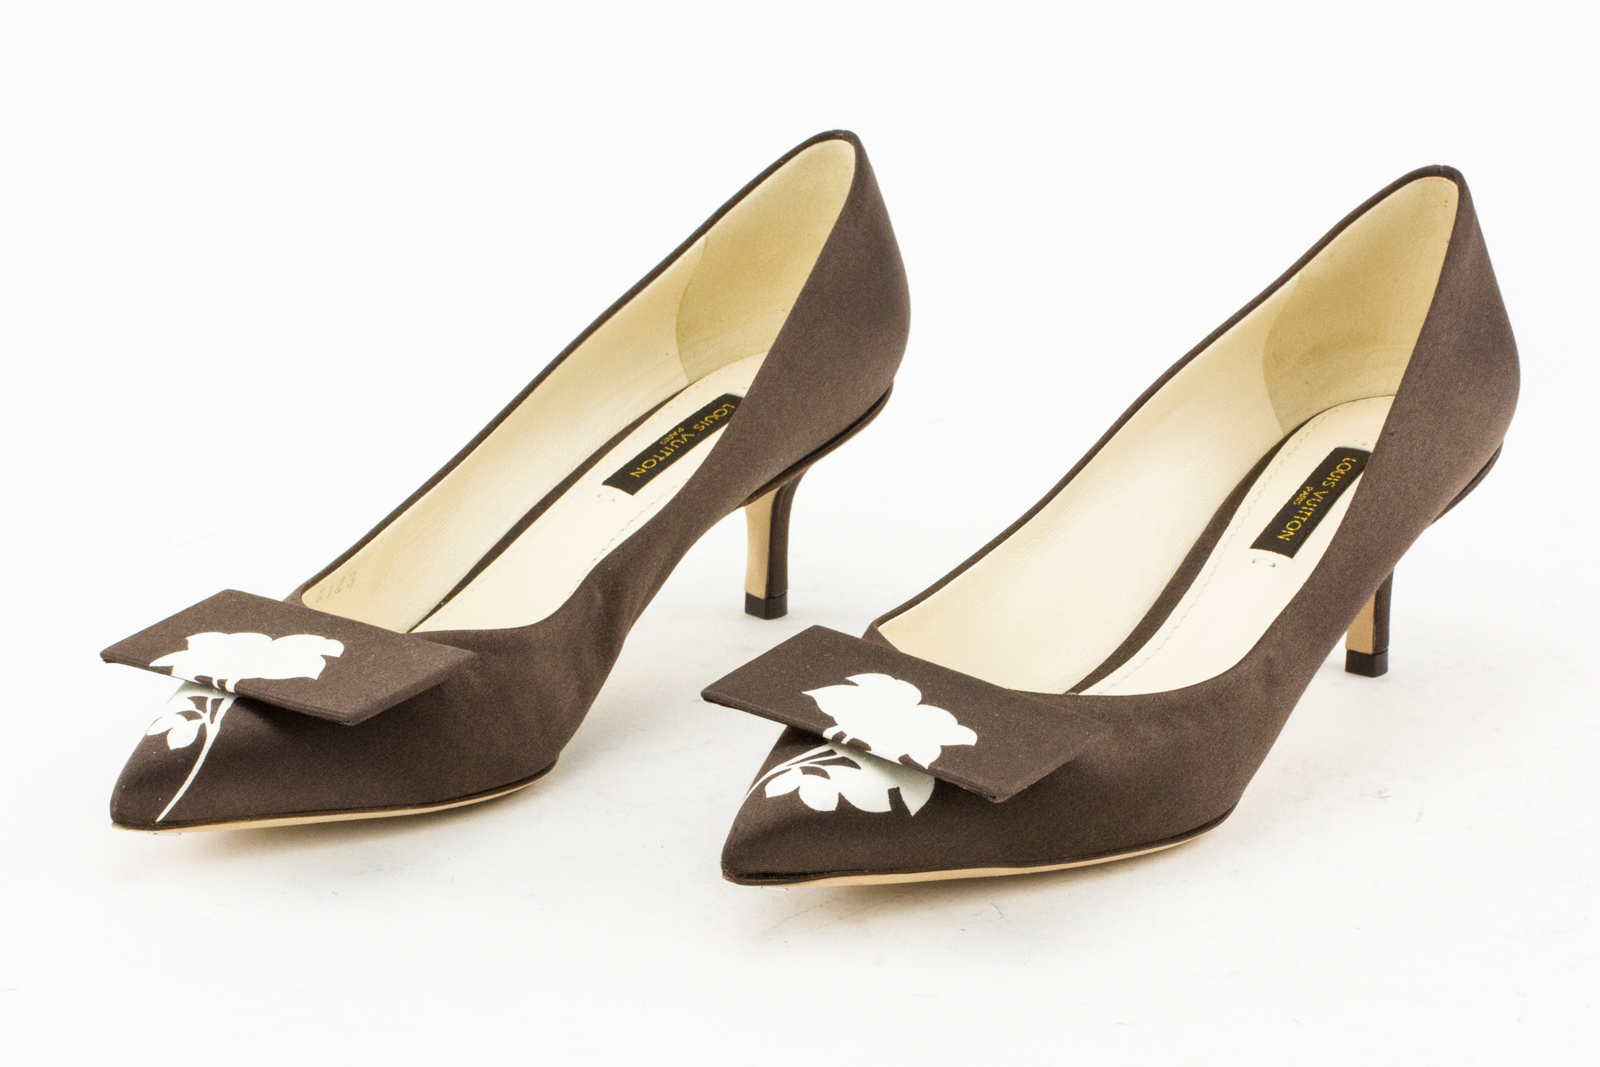 LOUIS VUITTON Brown Satin Pointed Toe Kitten Heel Pumps with Floral ...